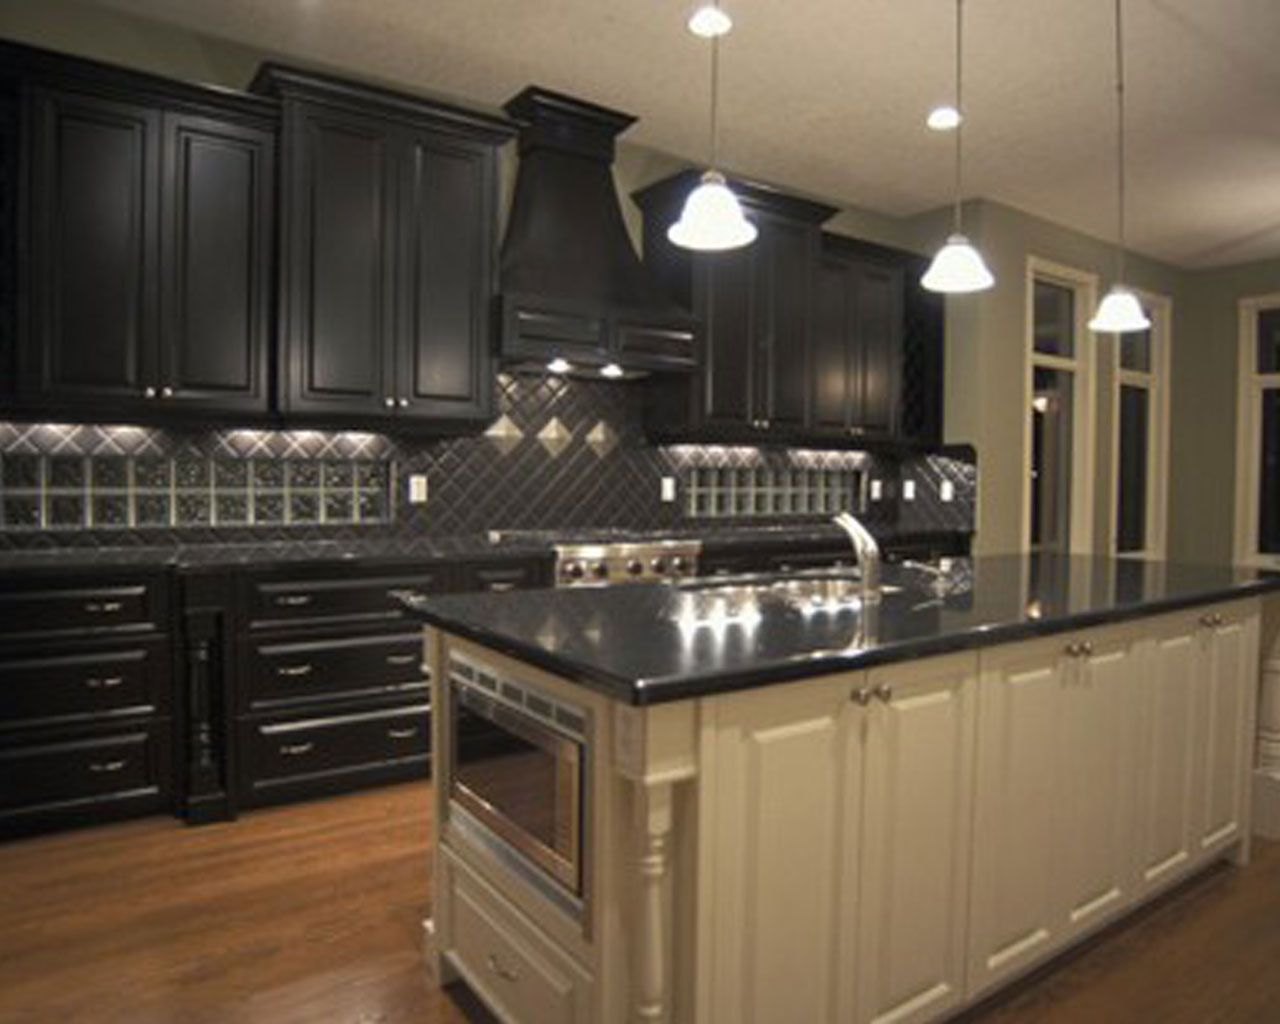 Finest design black kitchen cabinets wallpapers new for Kitchen ideas with black granite countertops